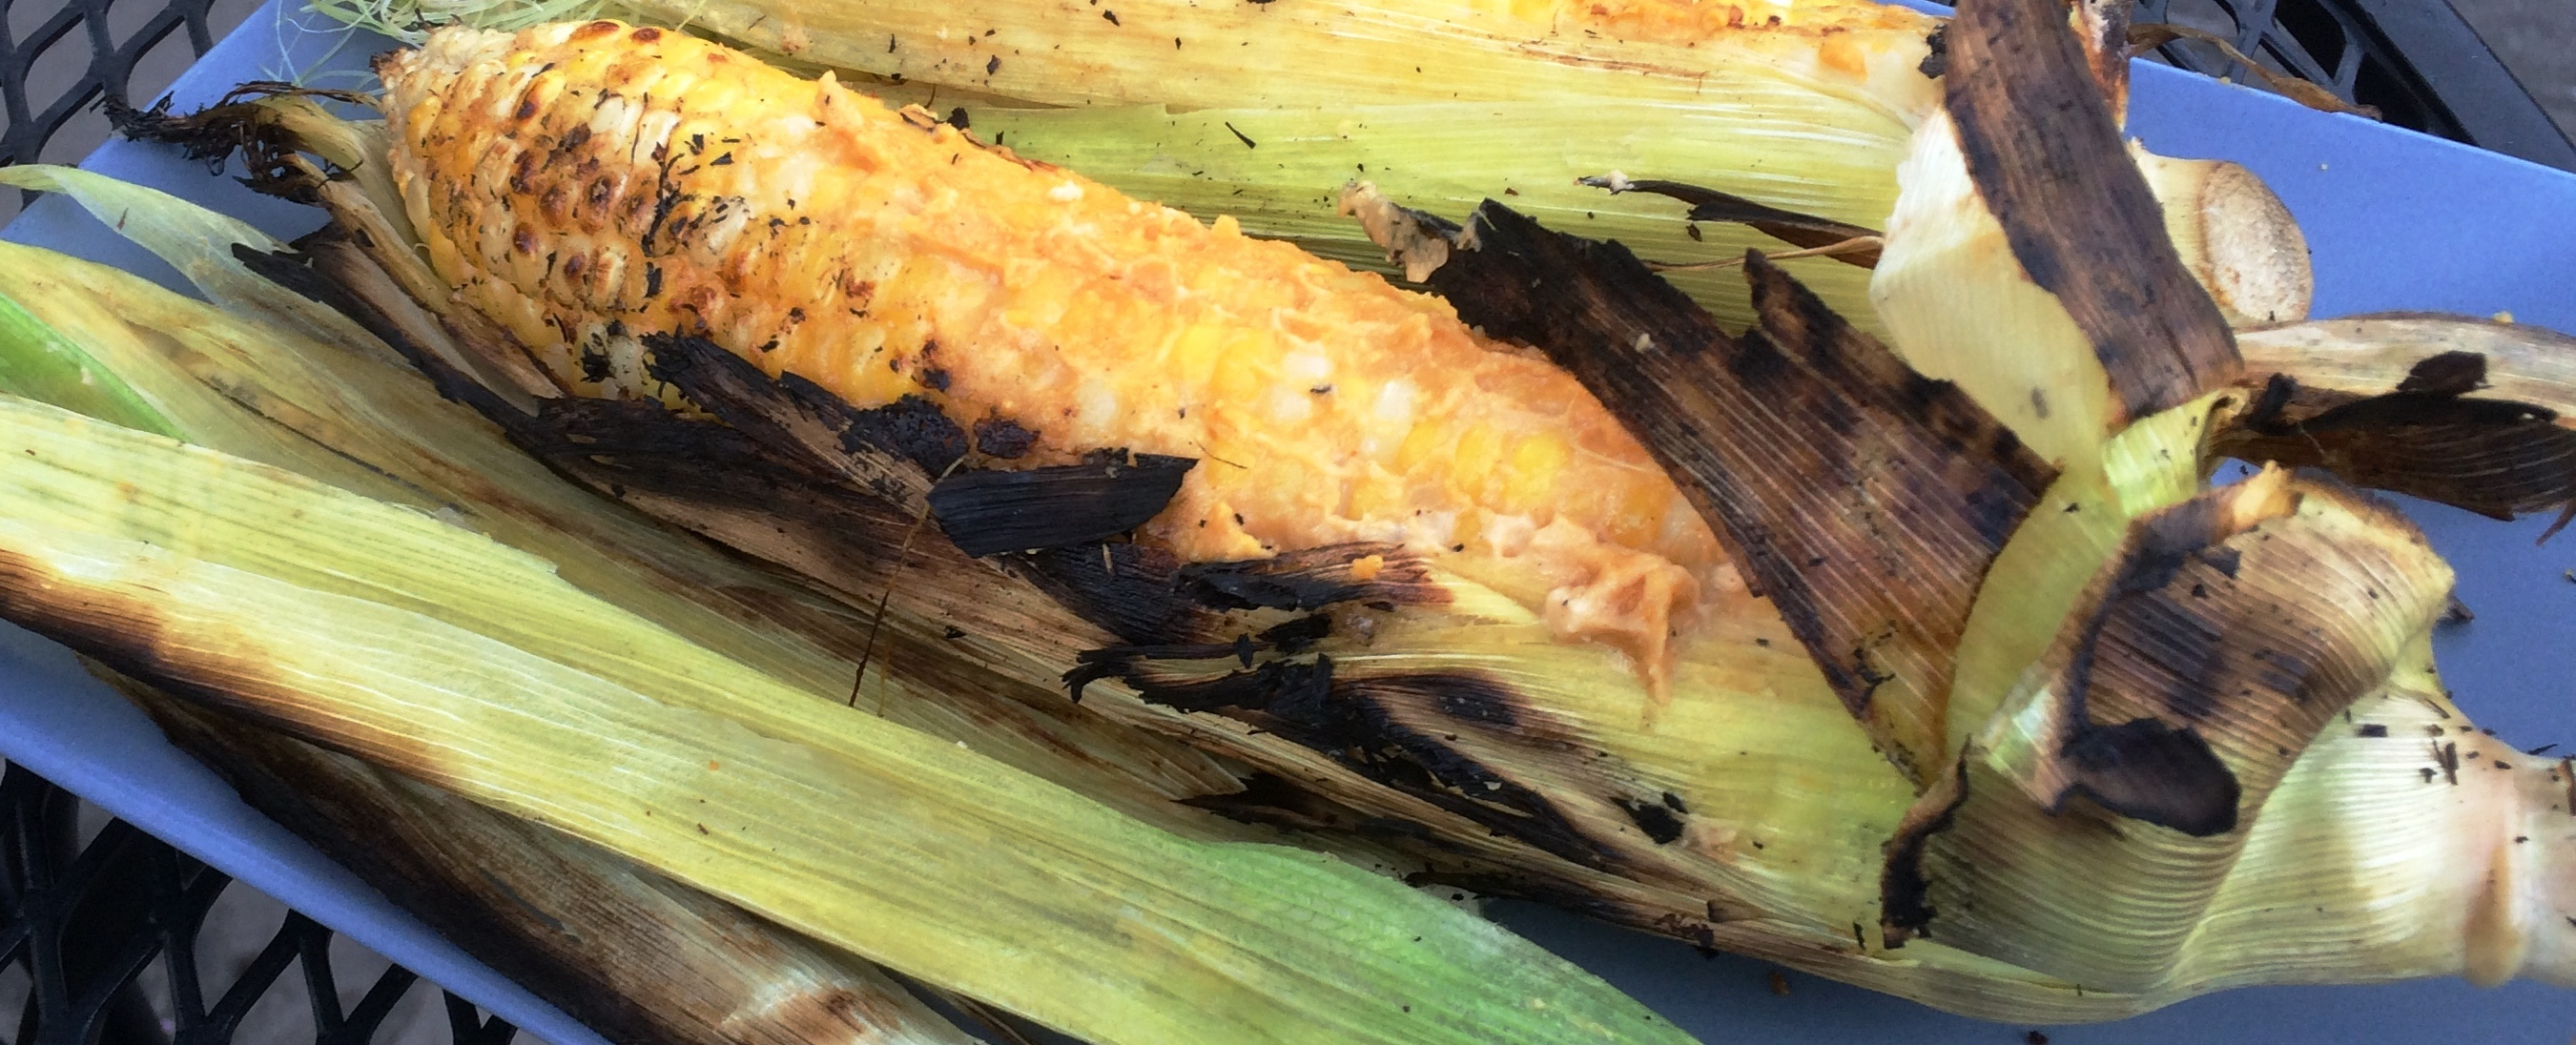 Dairy-Free Cheezy Grilled Corn – Yum!